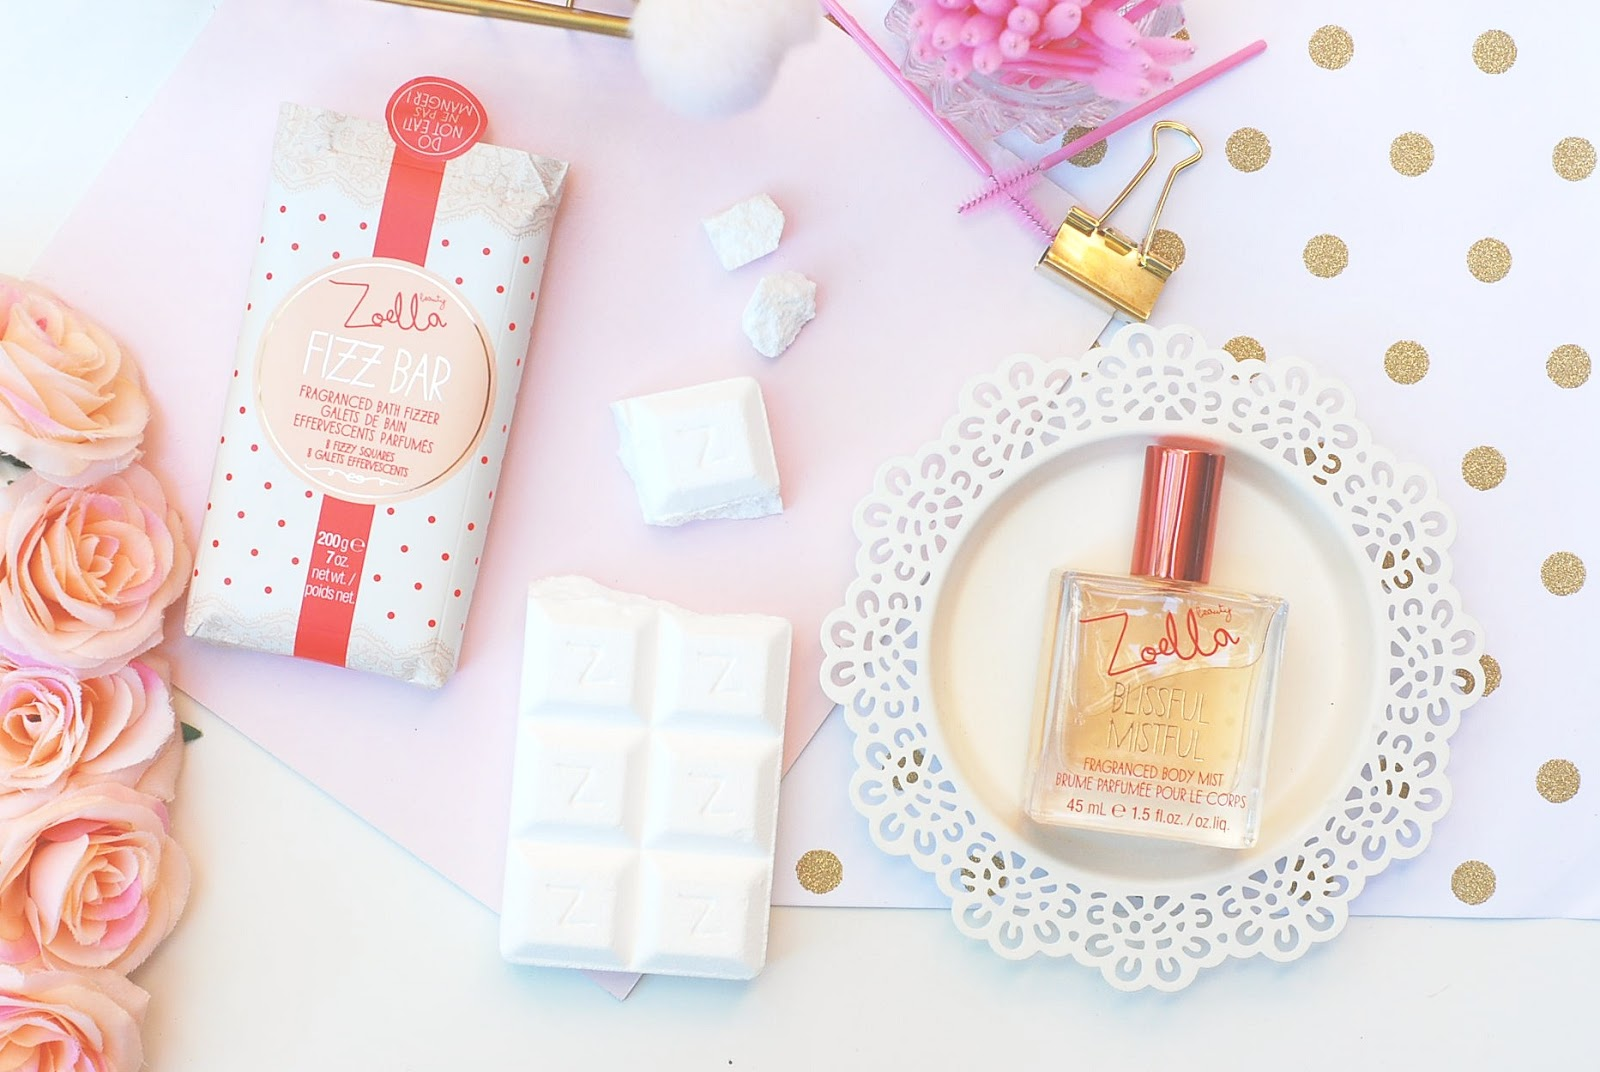 zoella beauty review where to find zoella beauty in canada